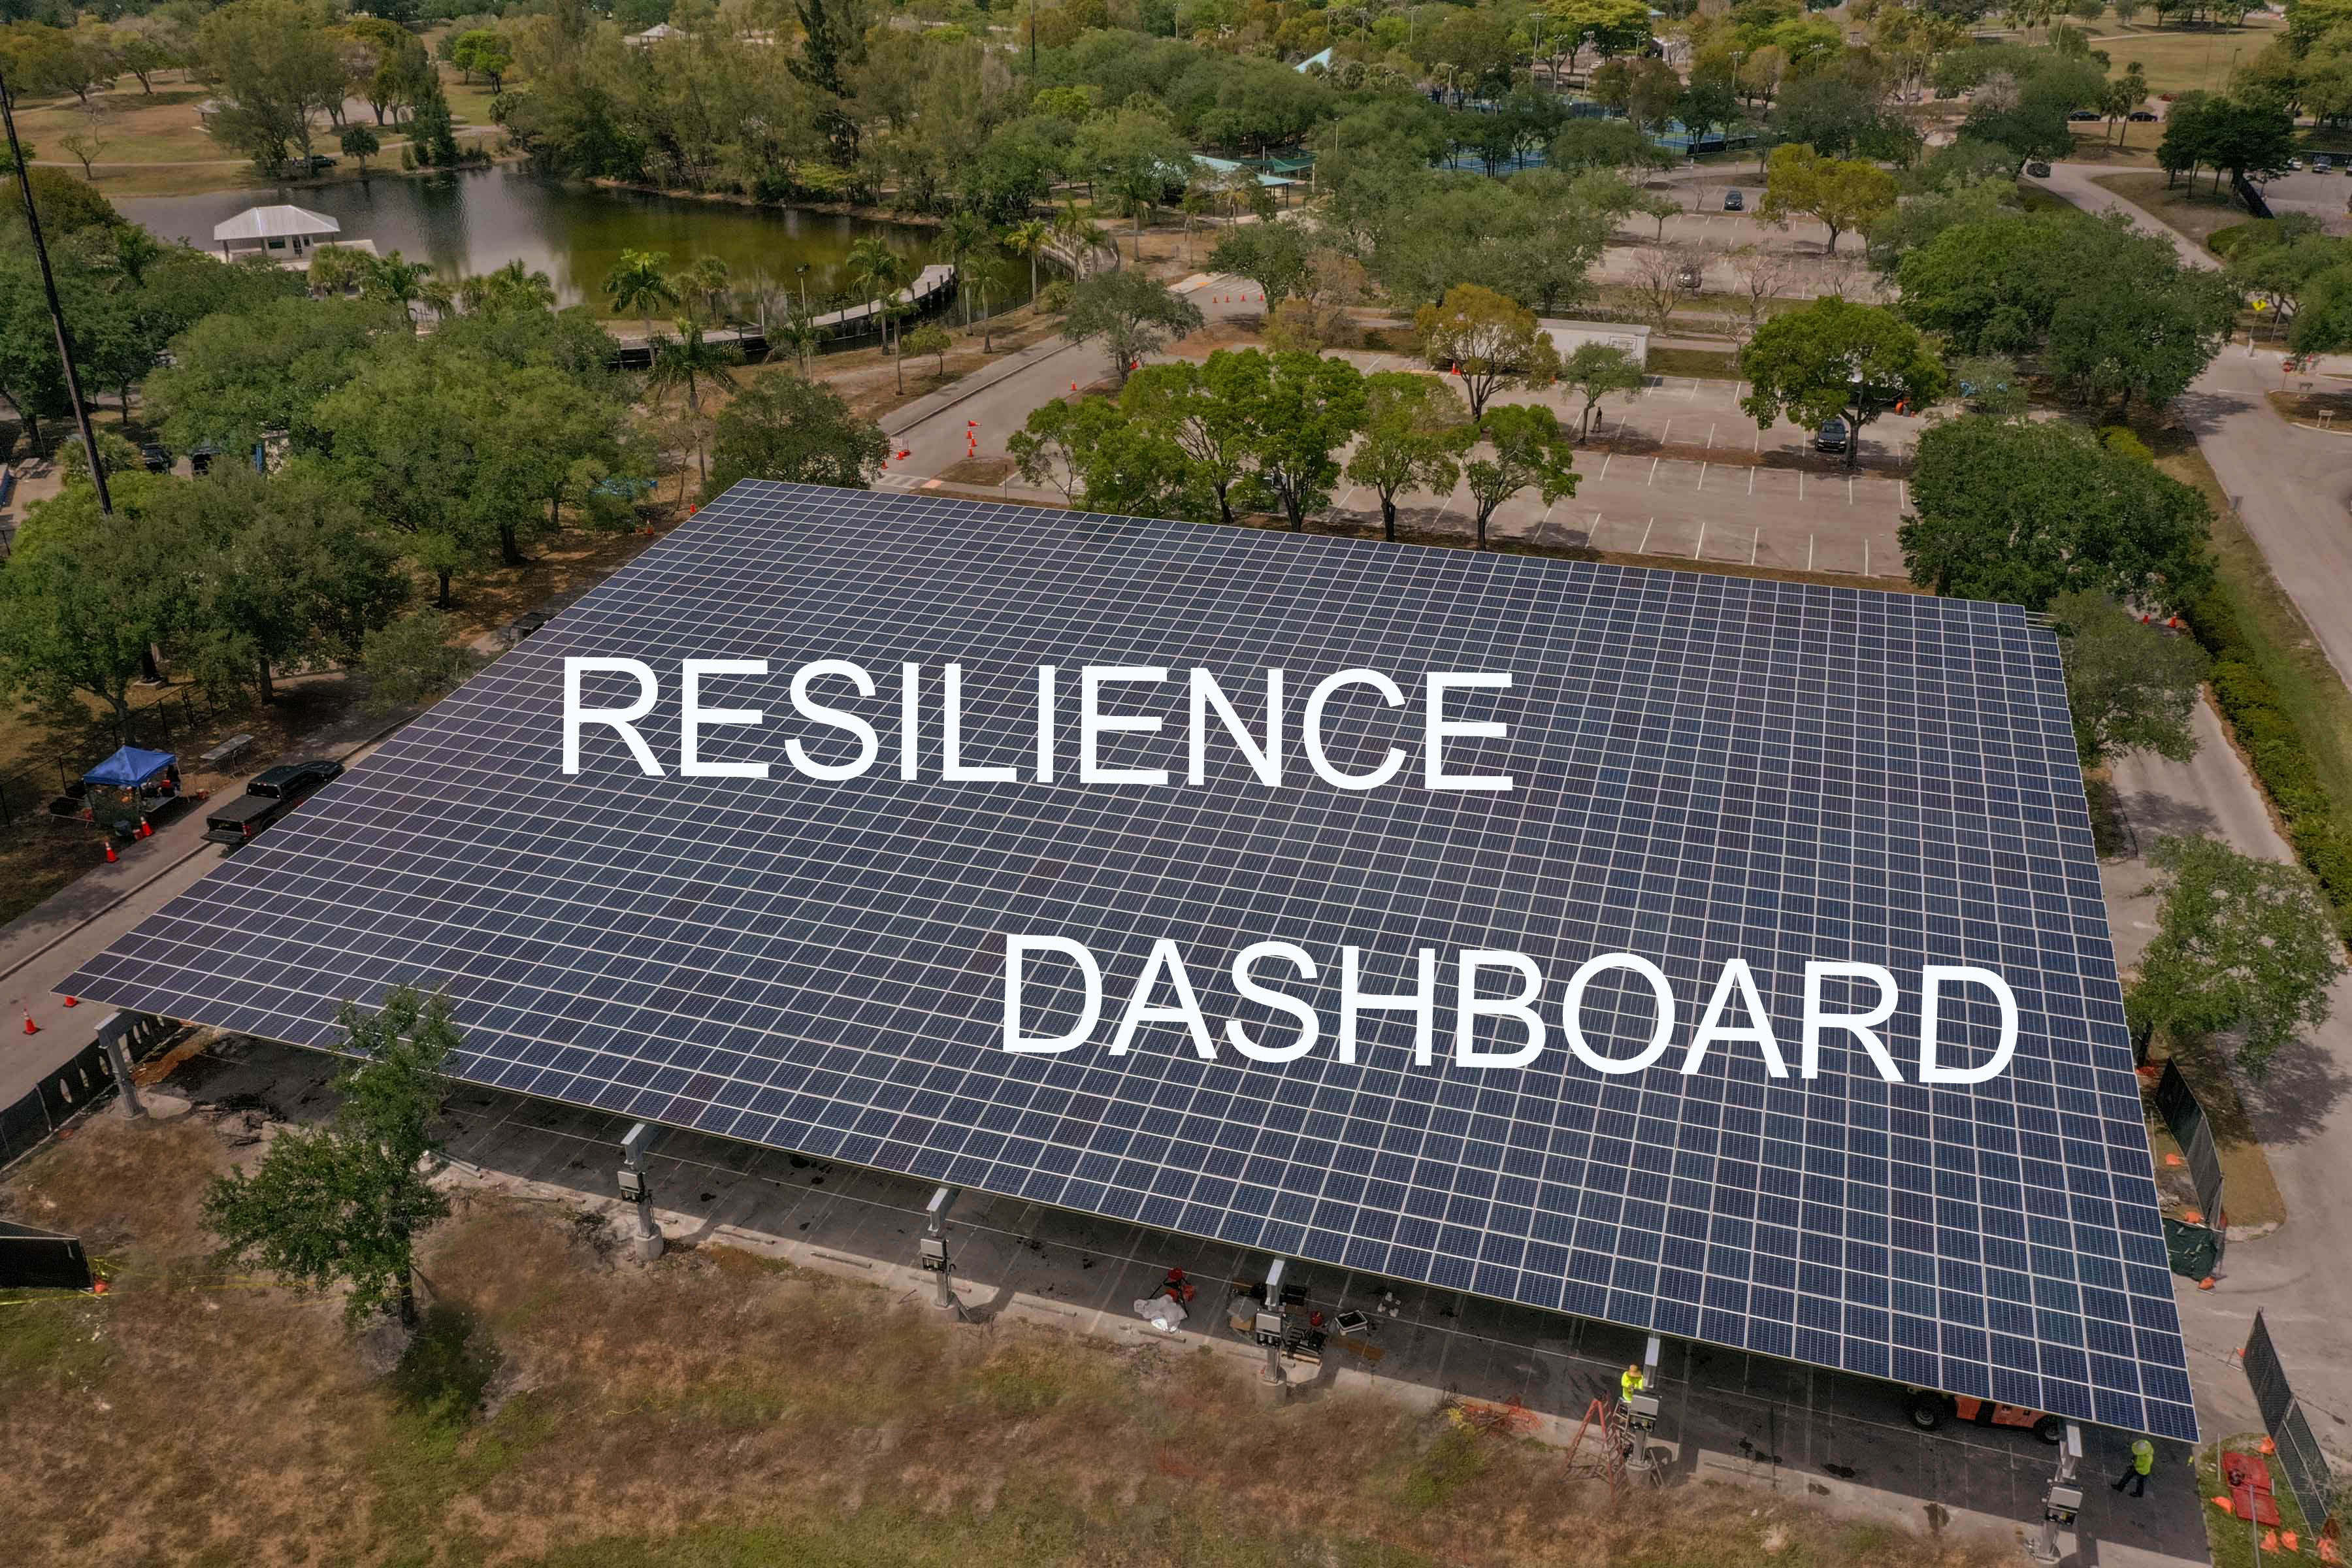 resilience dashboard, solar array